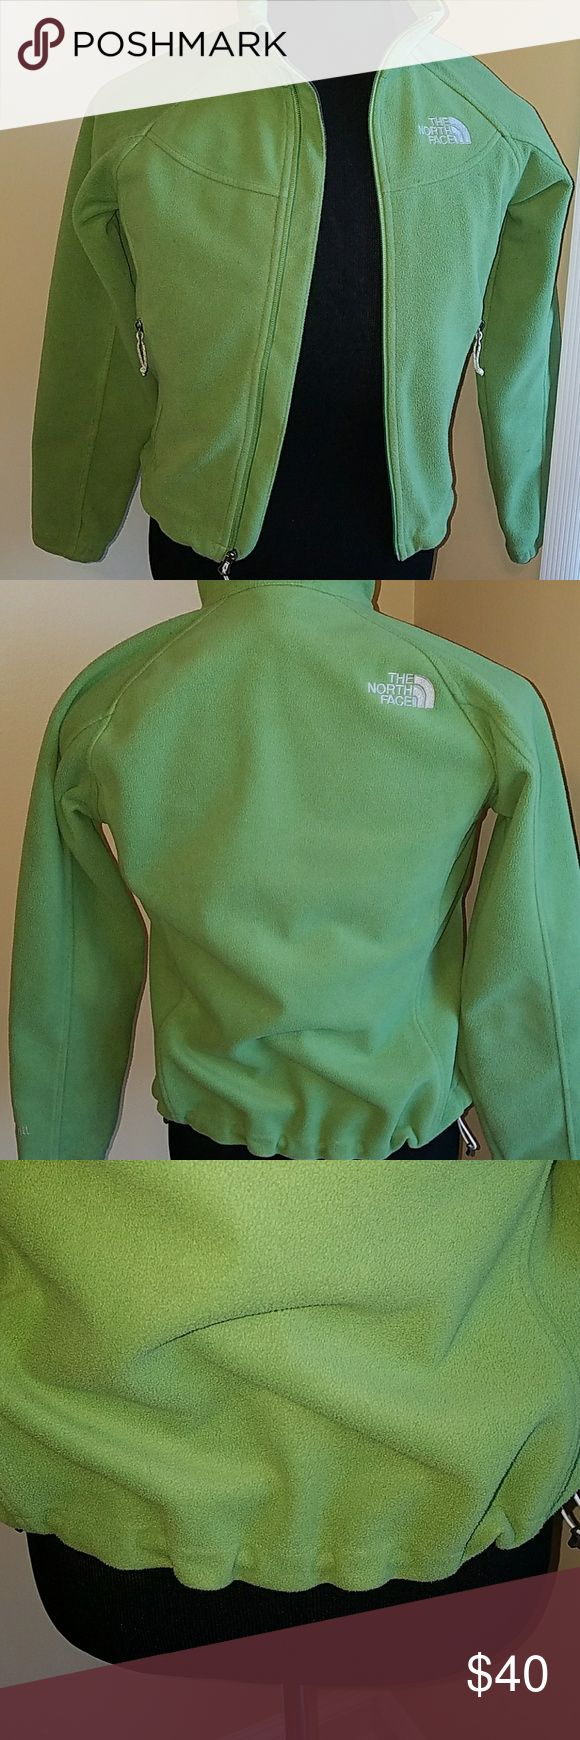 The North face fleece jacket(SALE) Pre-owned good condition North face fleece jacket a size small for women very cute no tears no rips no stains it has a gathered waist at the bottom it has two long pockets on each side zipper closure on the front. Size s/p super cute check pictures above. The North Face Jackets & Coats Utility Jackets